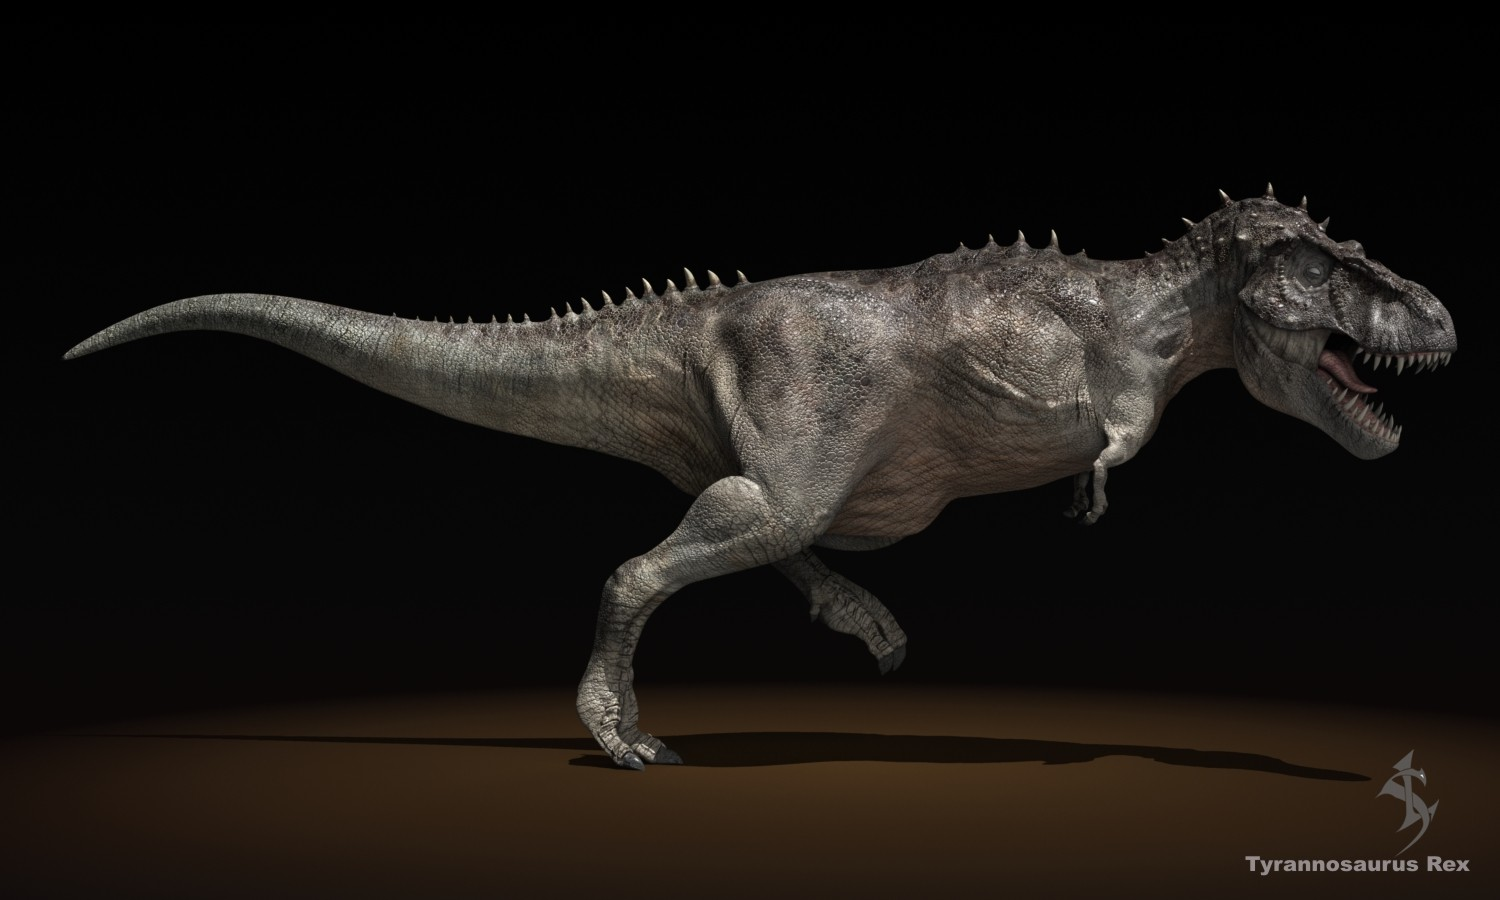 characteristics of tyrannosaurus rex Characteristics: tyrannosaurus rex was a large (at least 40 feet), massively built (5-6 metric tons), bipedal dinosaur the head was huge.